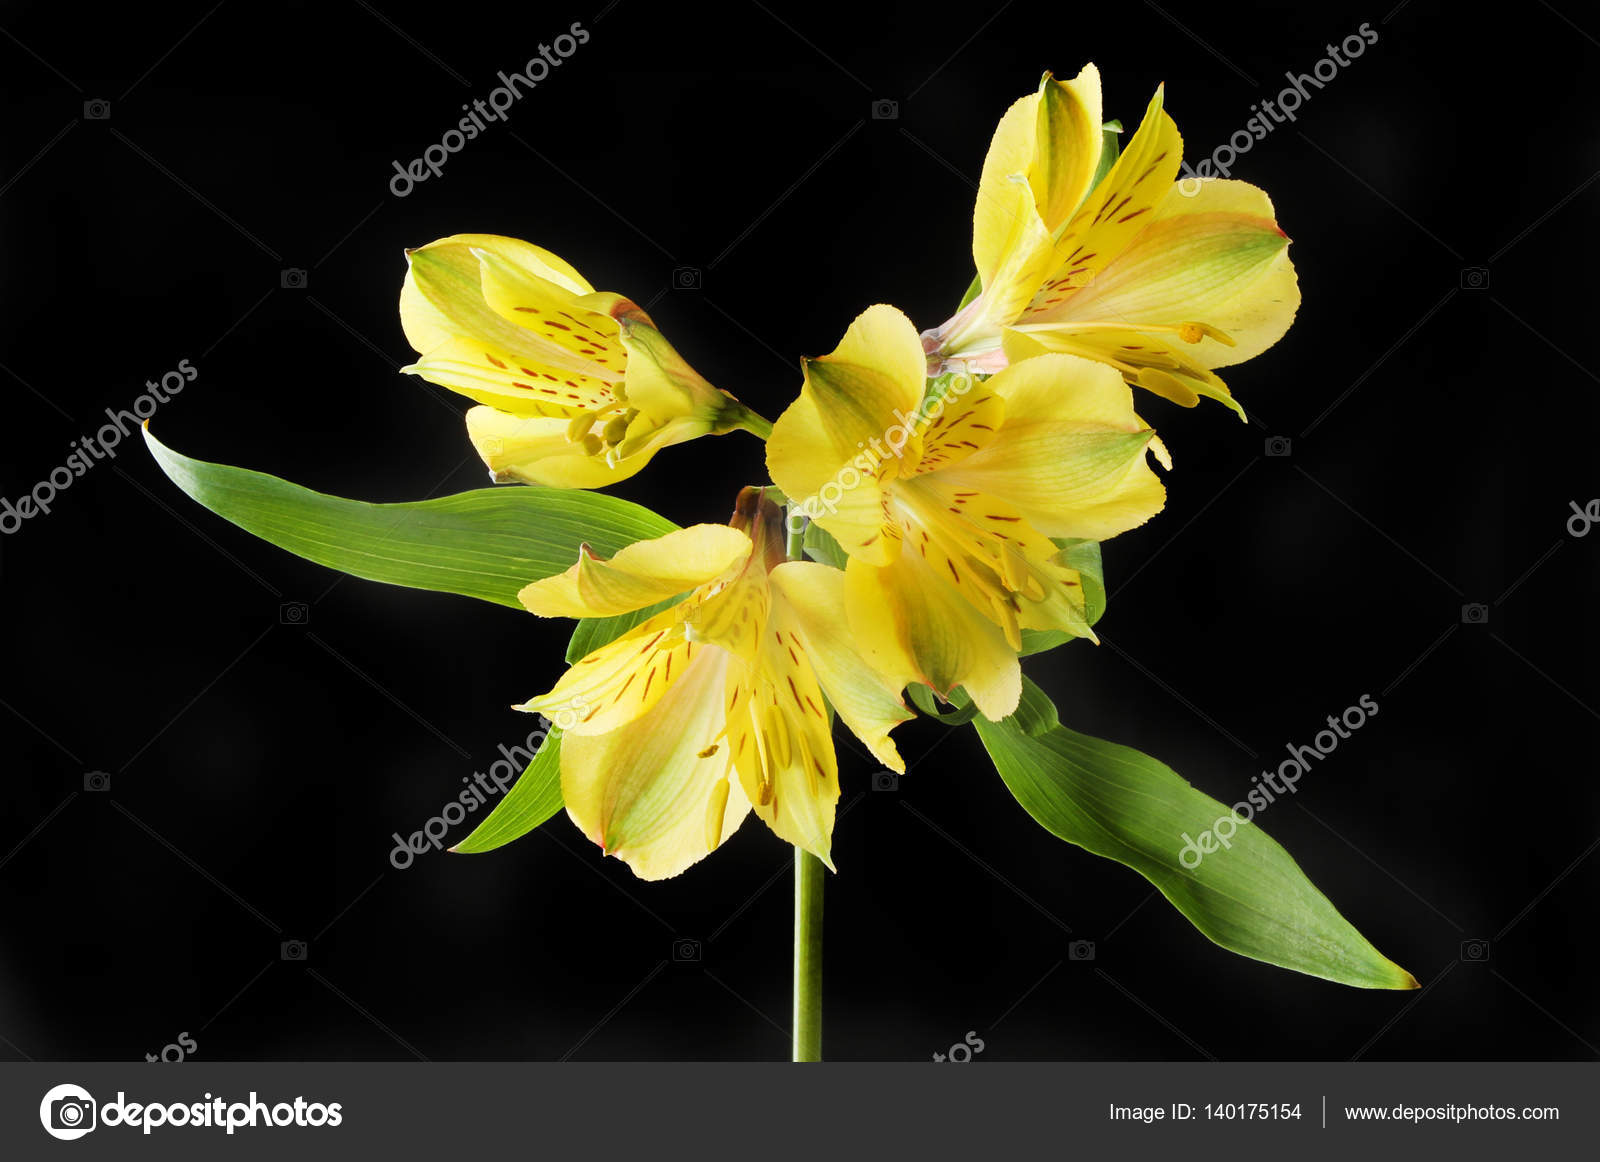 Peruvian lily flowers stock photo griffin024 140175154 alstroemeria peruvian lily flowers and foliage isolated against black photo by griffin024 izmirmasajfo